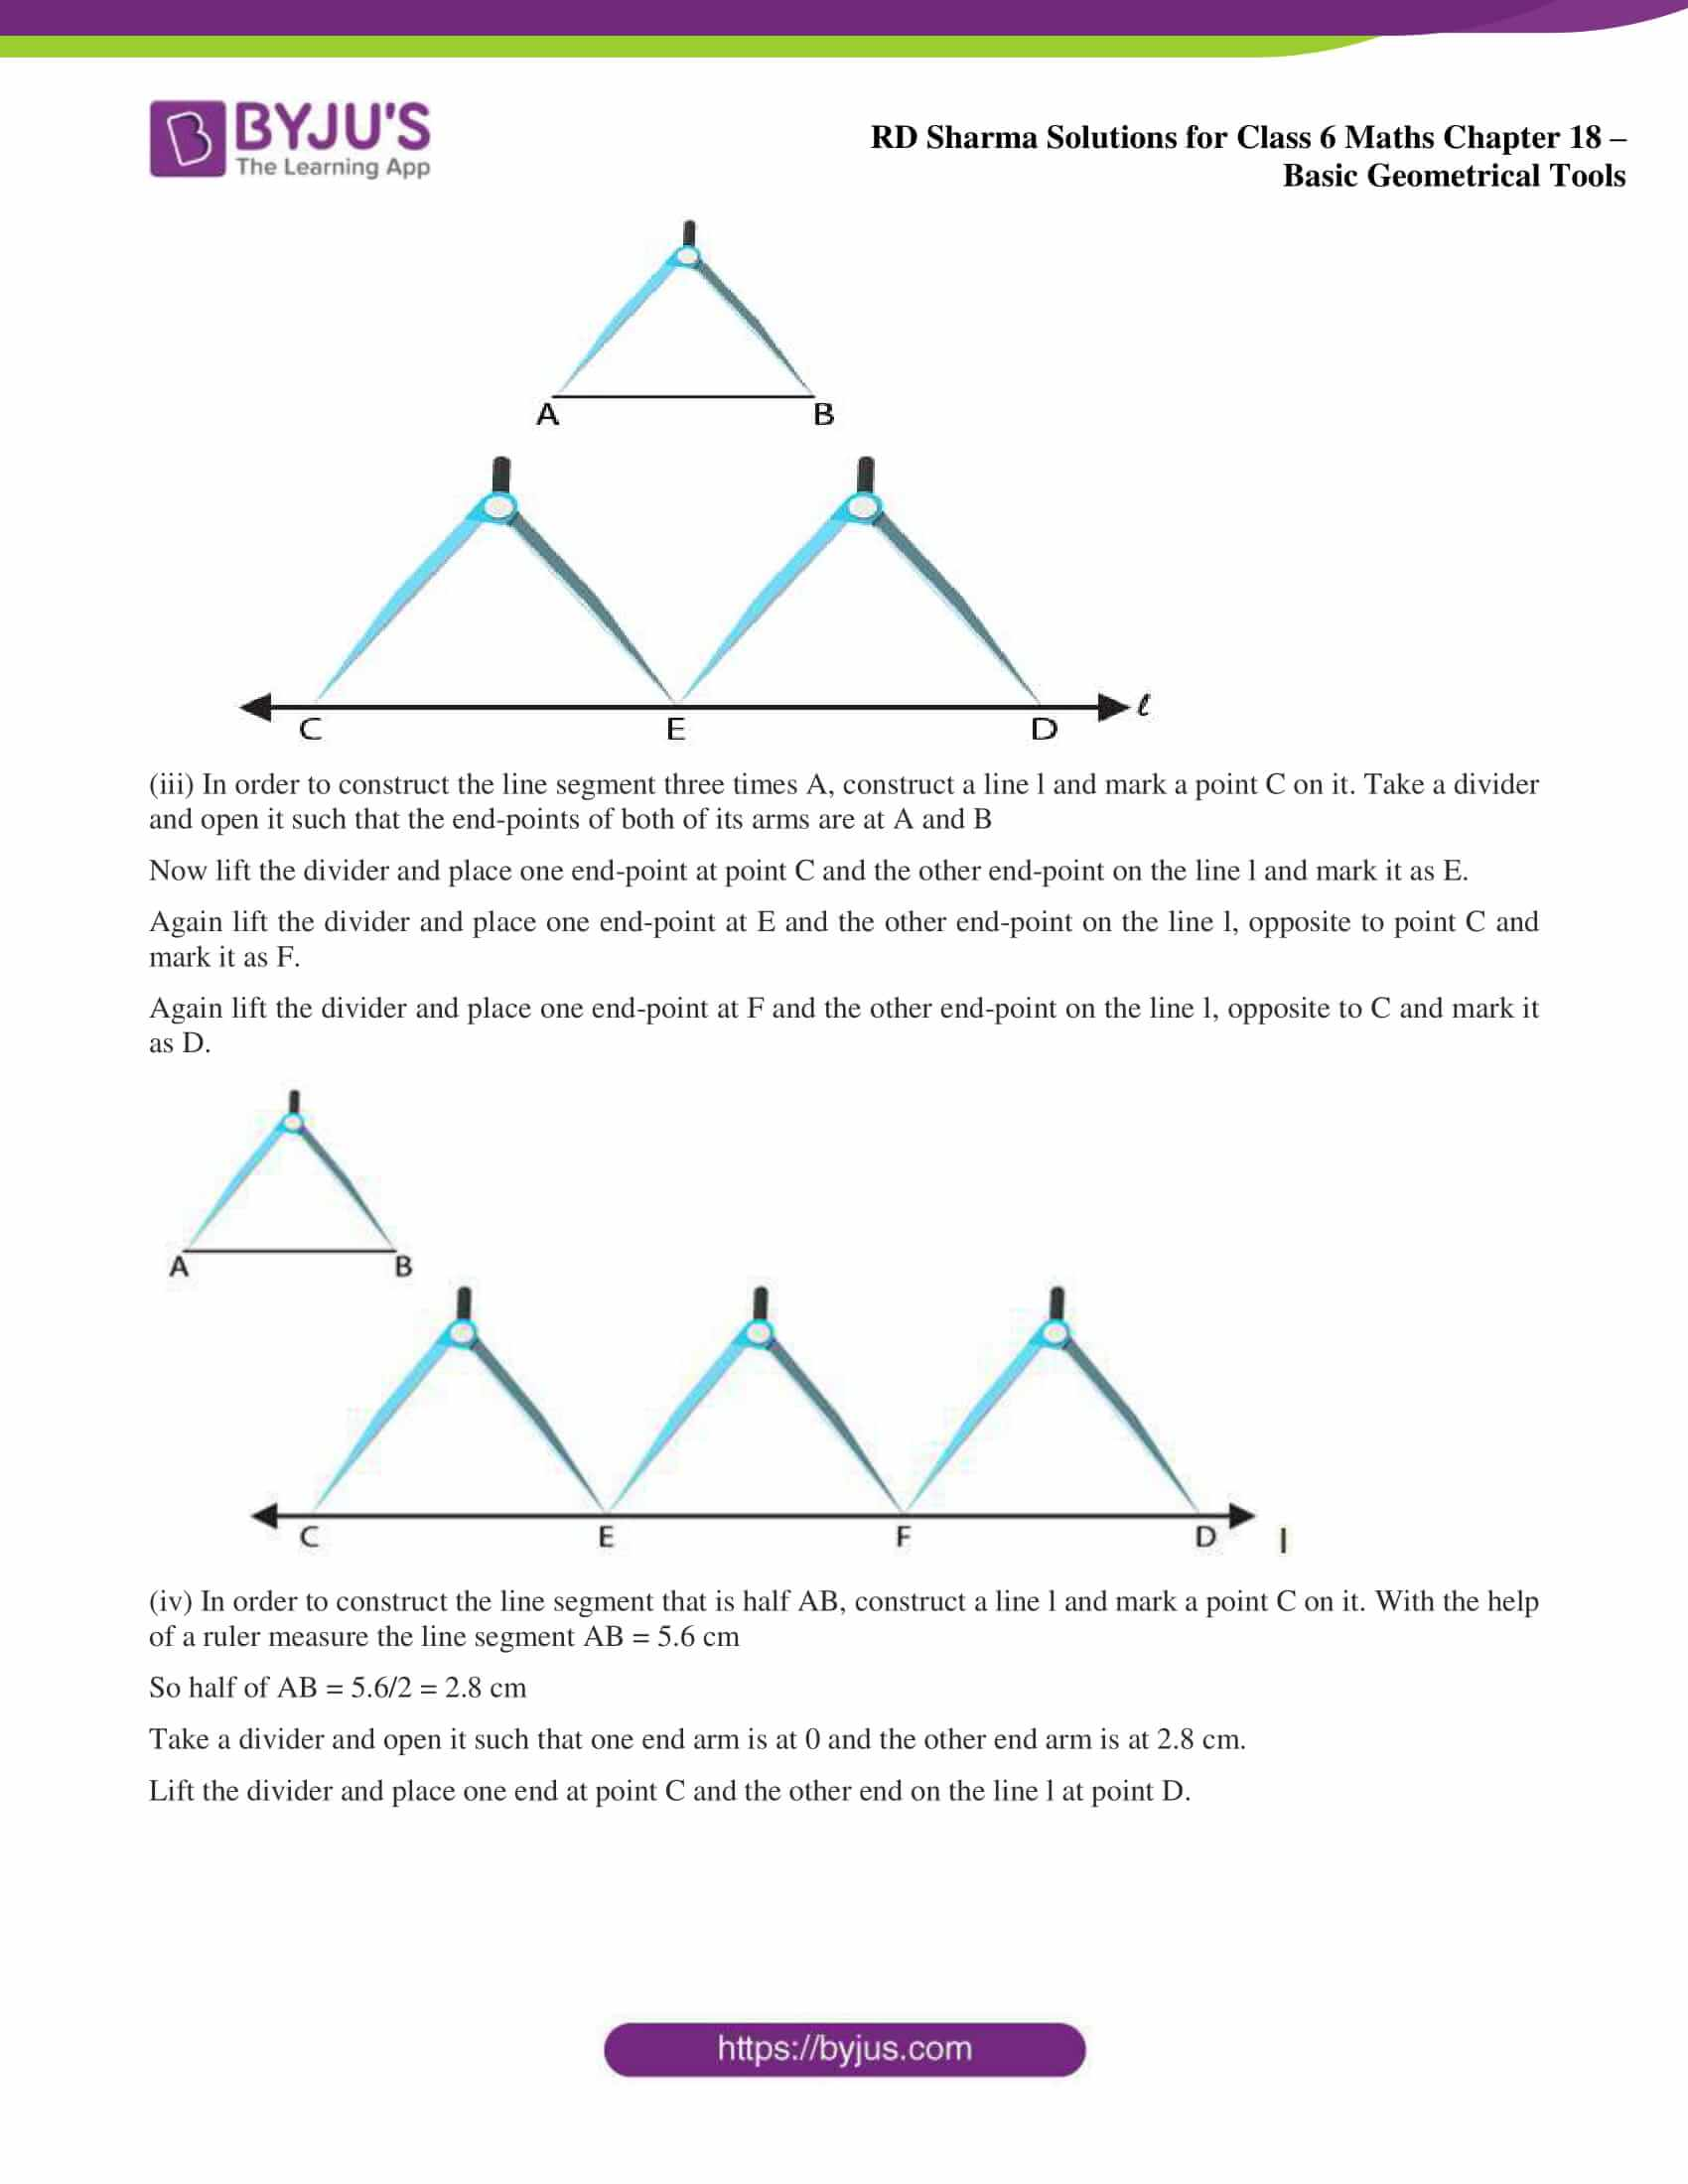 rd sharma solutions nov2020 class 6 maths chapter 18 exercise 2 2